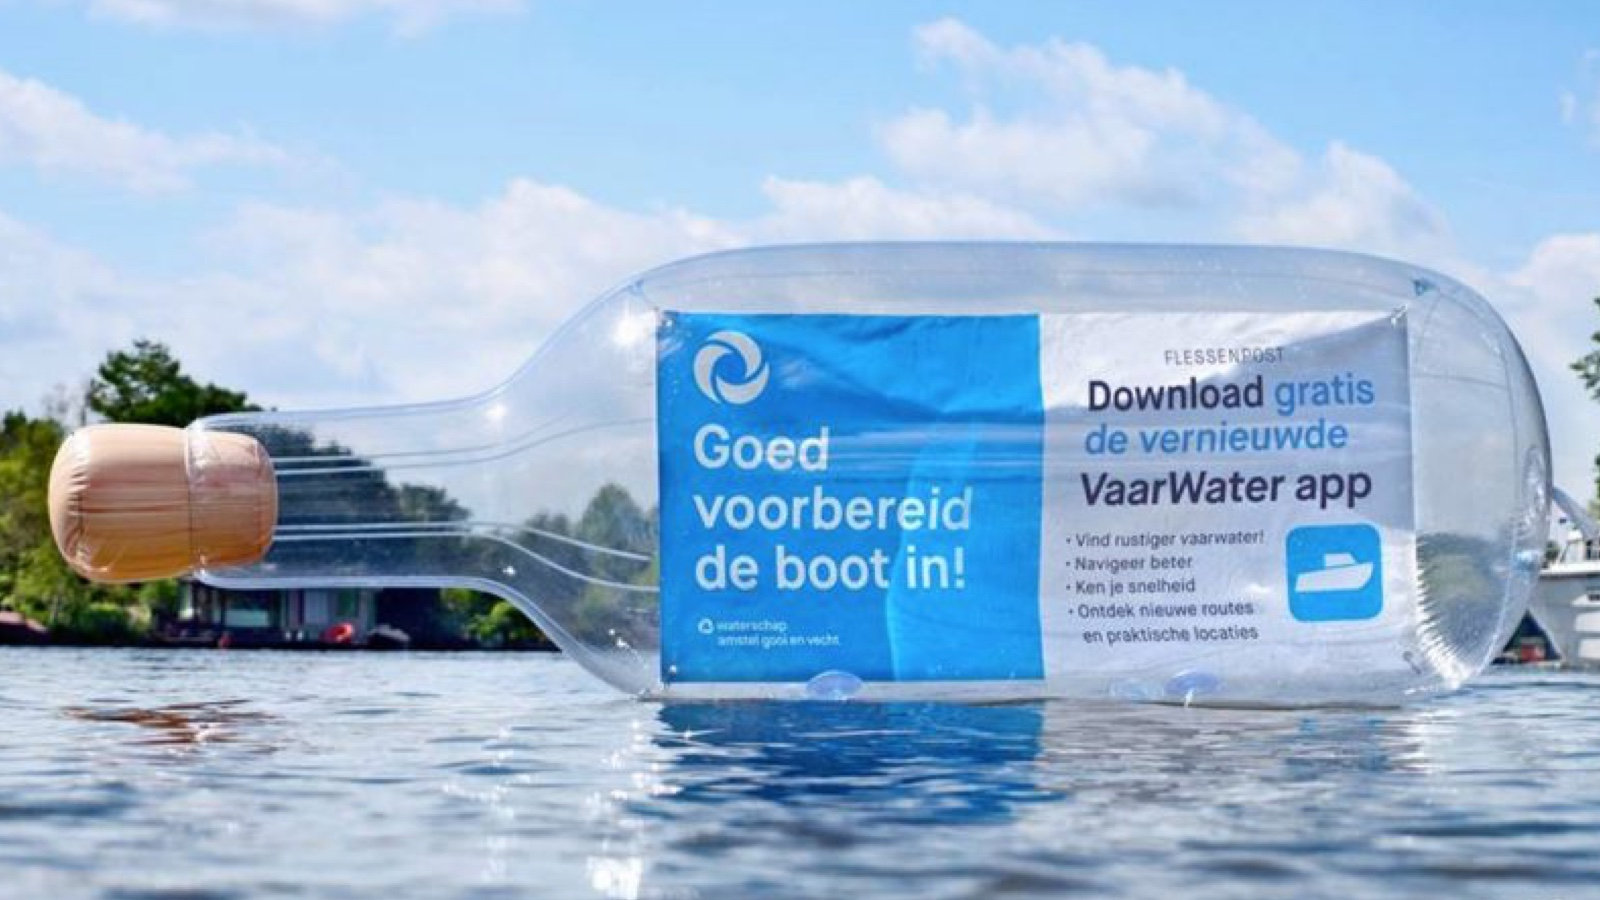 Opblaasbare fles - inflatable bottle - flessnepost activatie 02 - waternet - Publi air